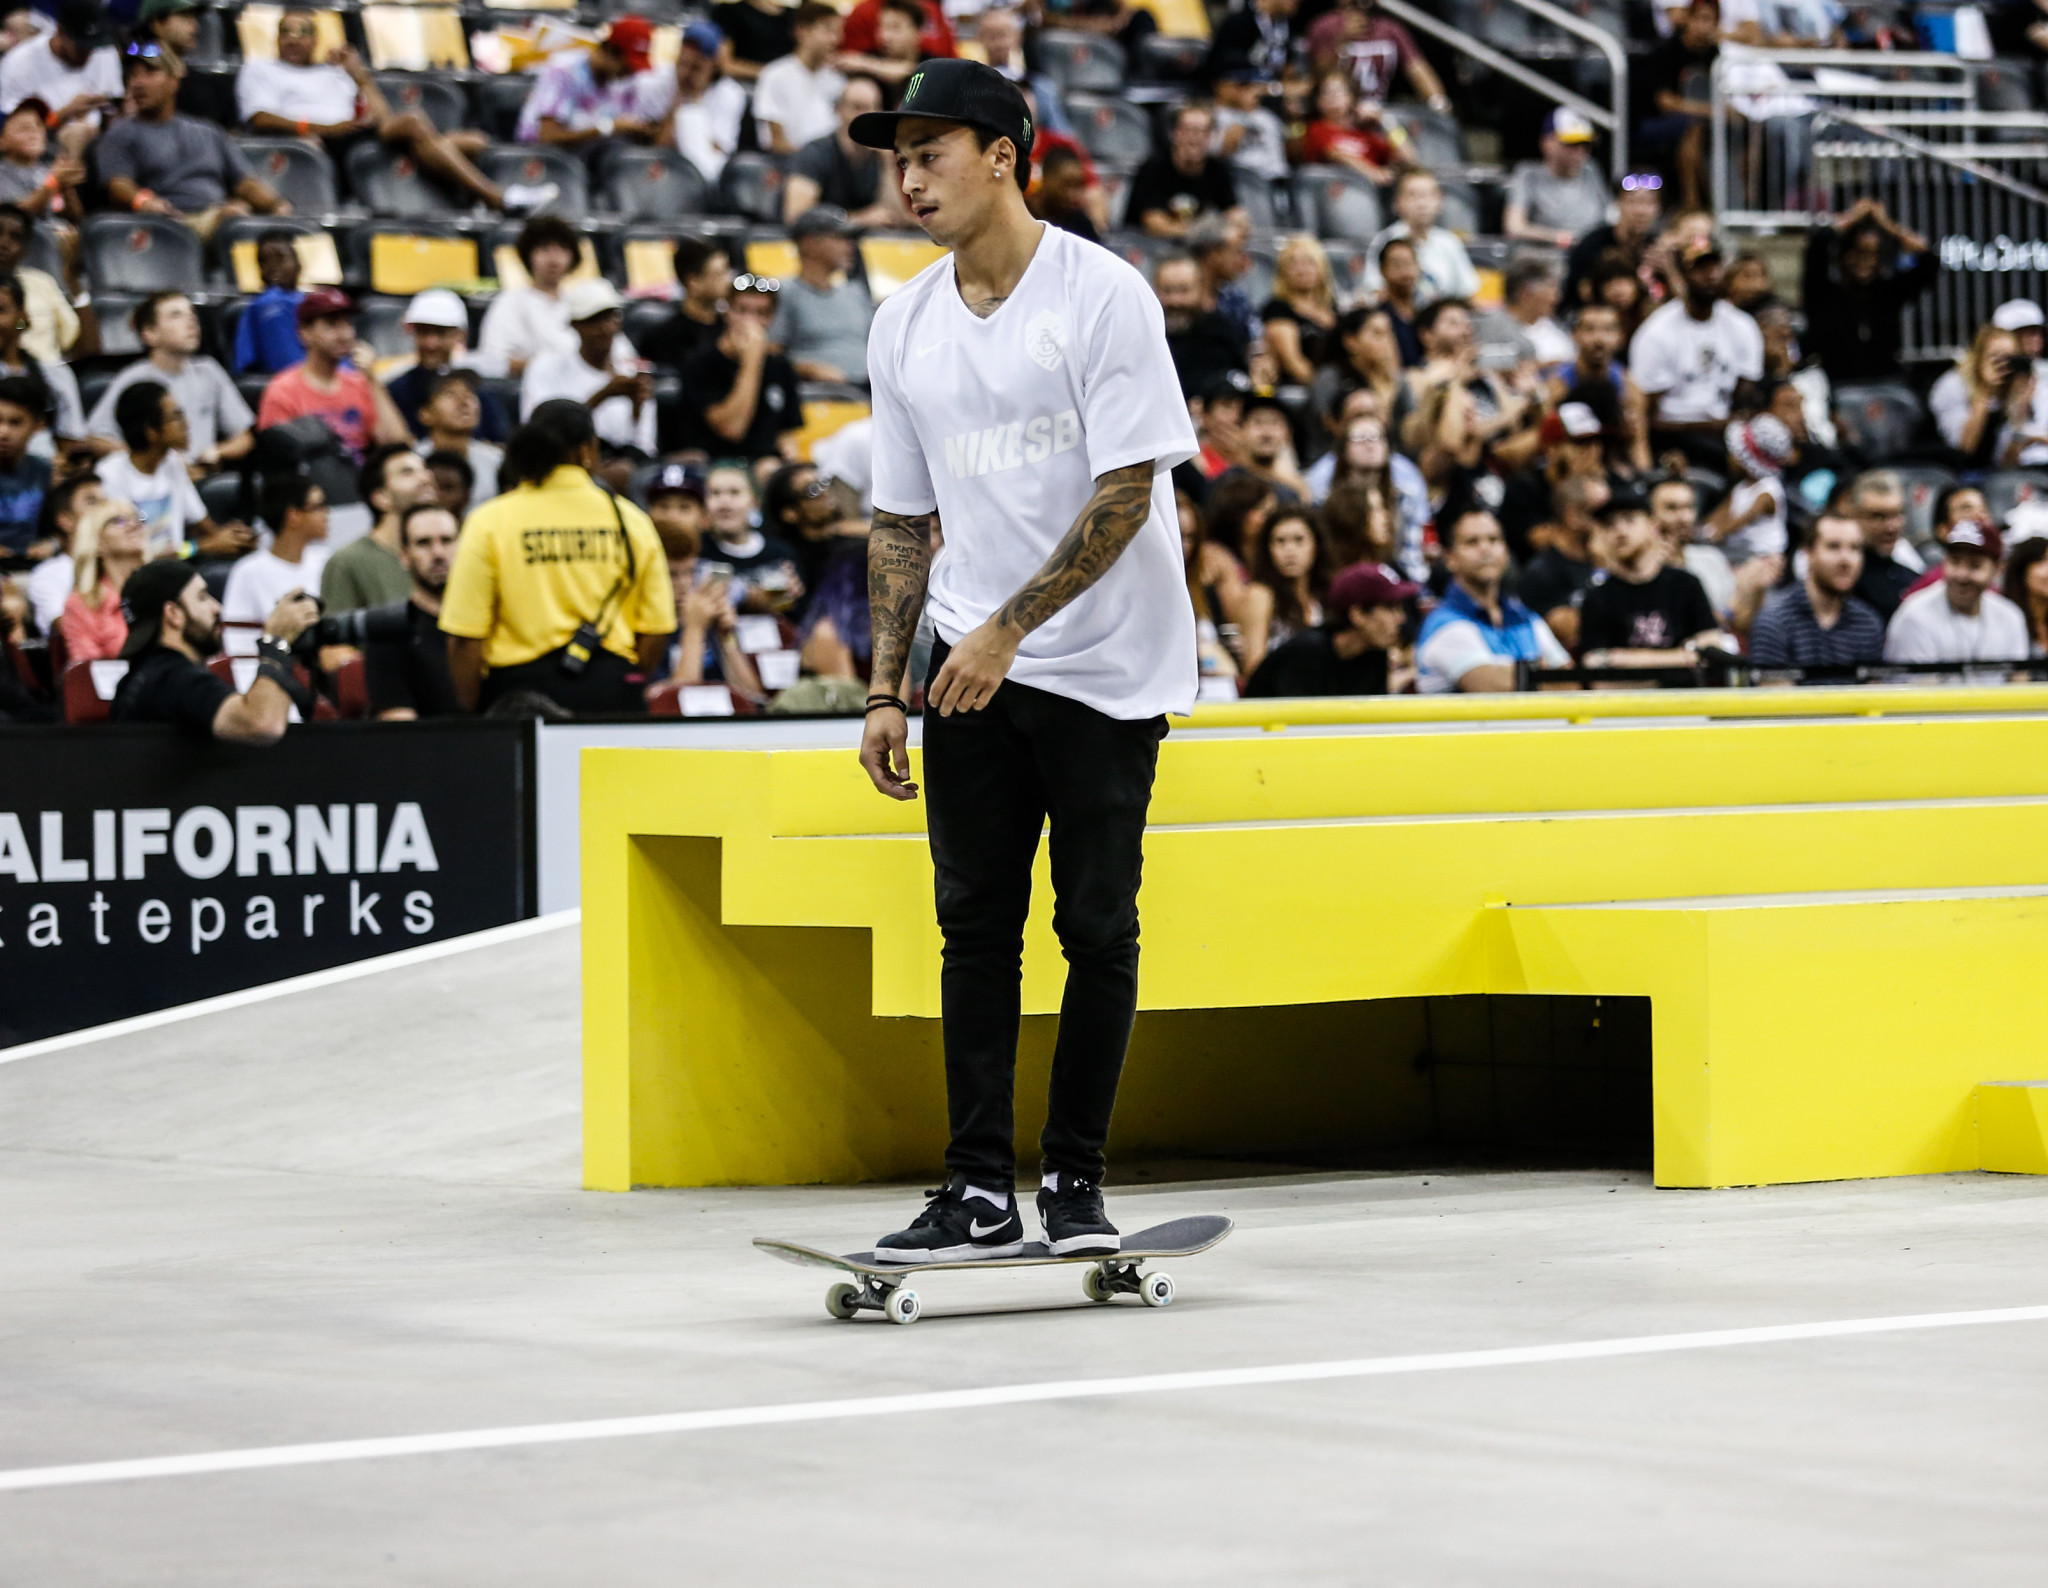 """Reigning world champion Nyjah Huston believes skateboarding's Olympic debut at Tokyo 2020 has been a """"long time coming""""  ©Getty Images"""